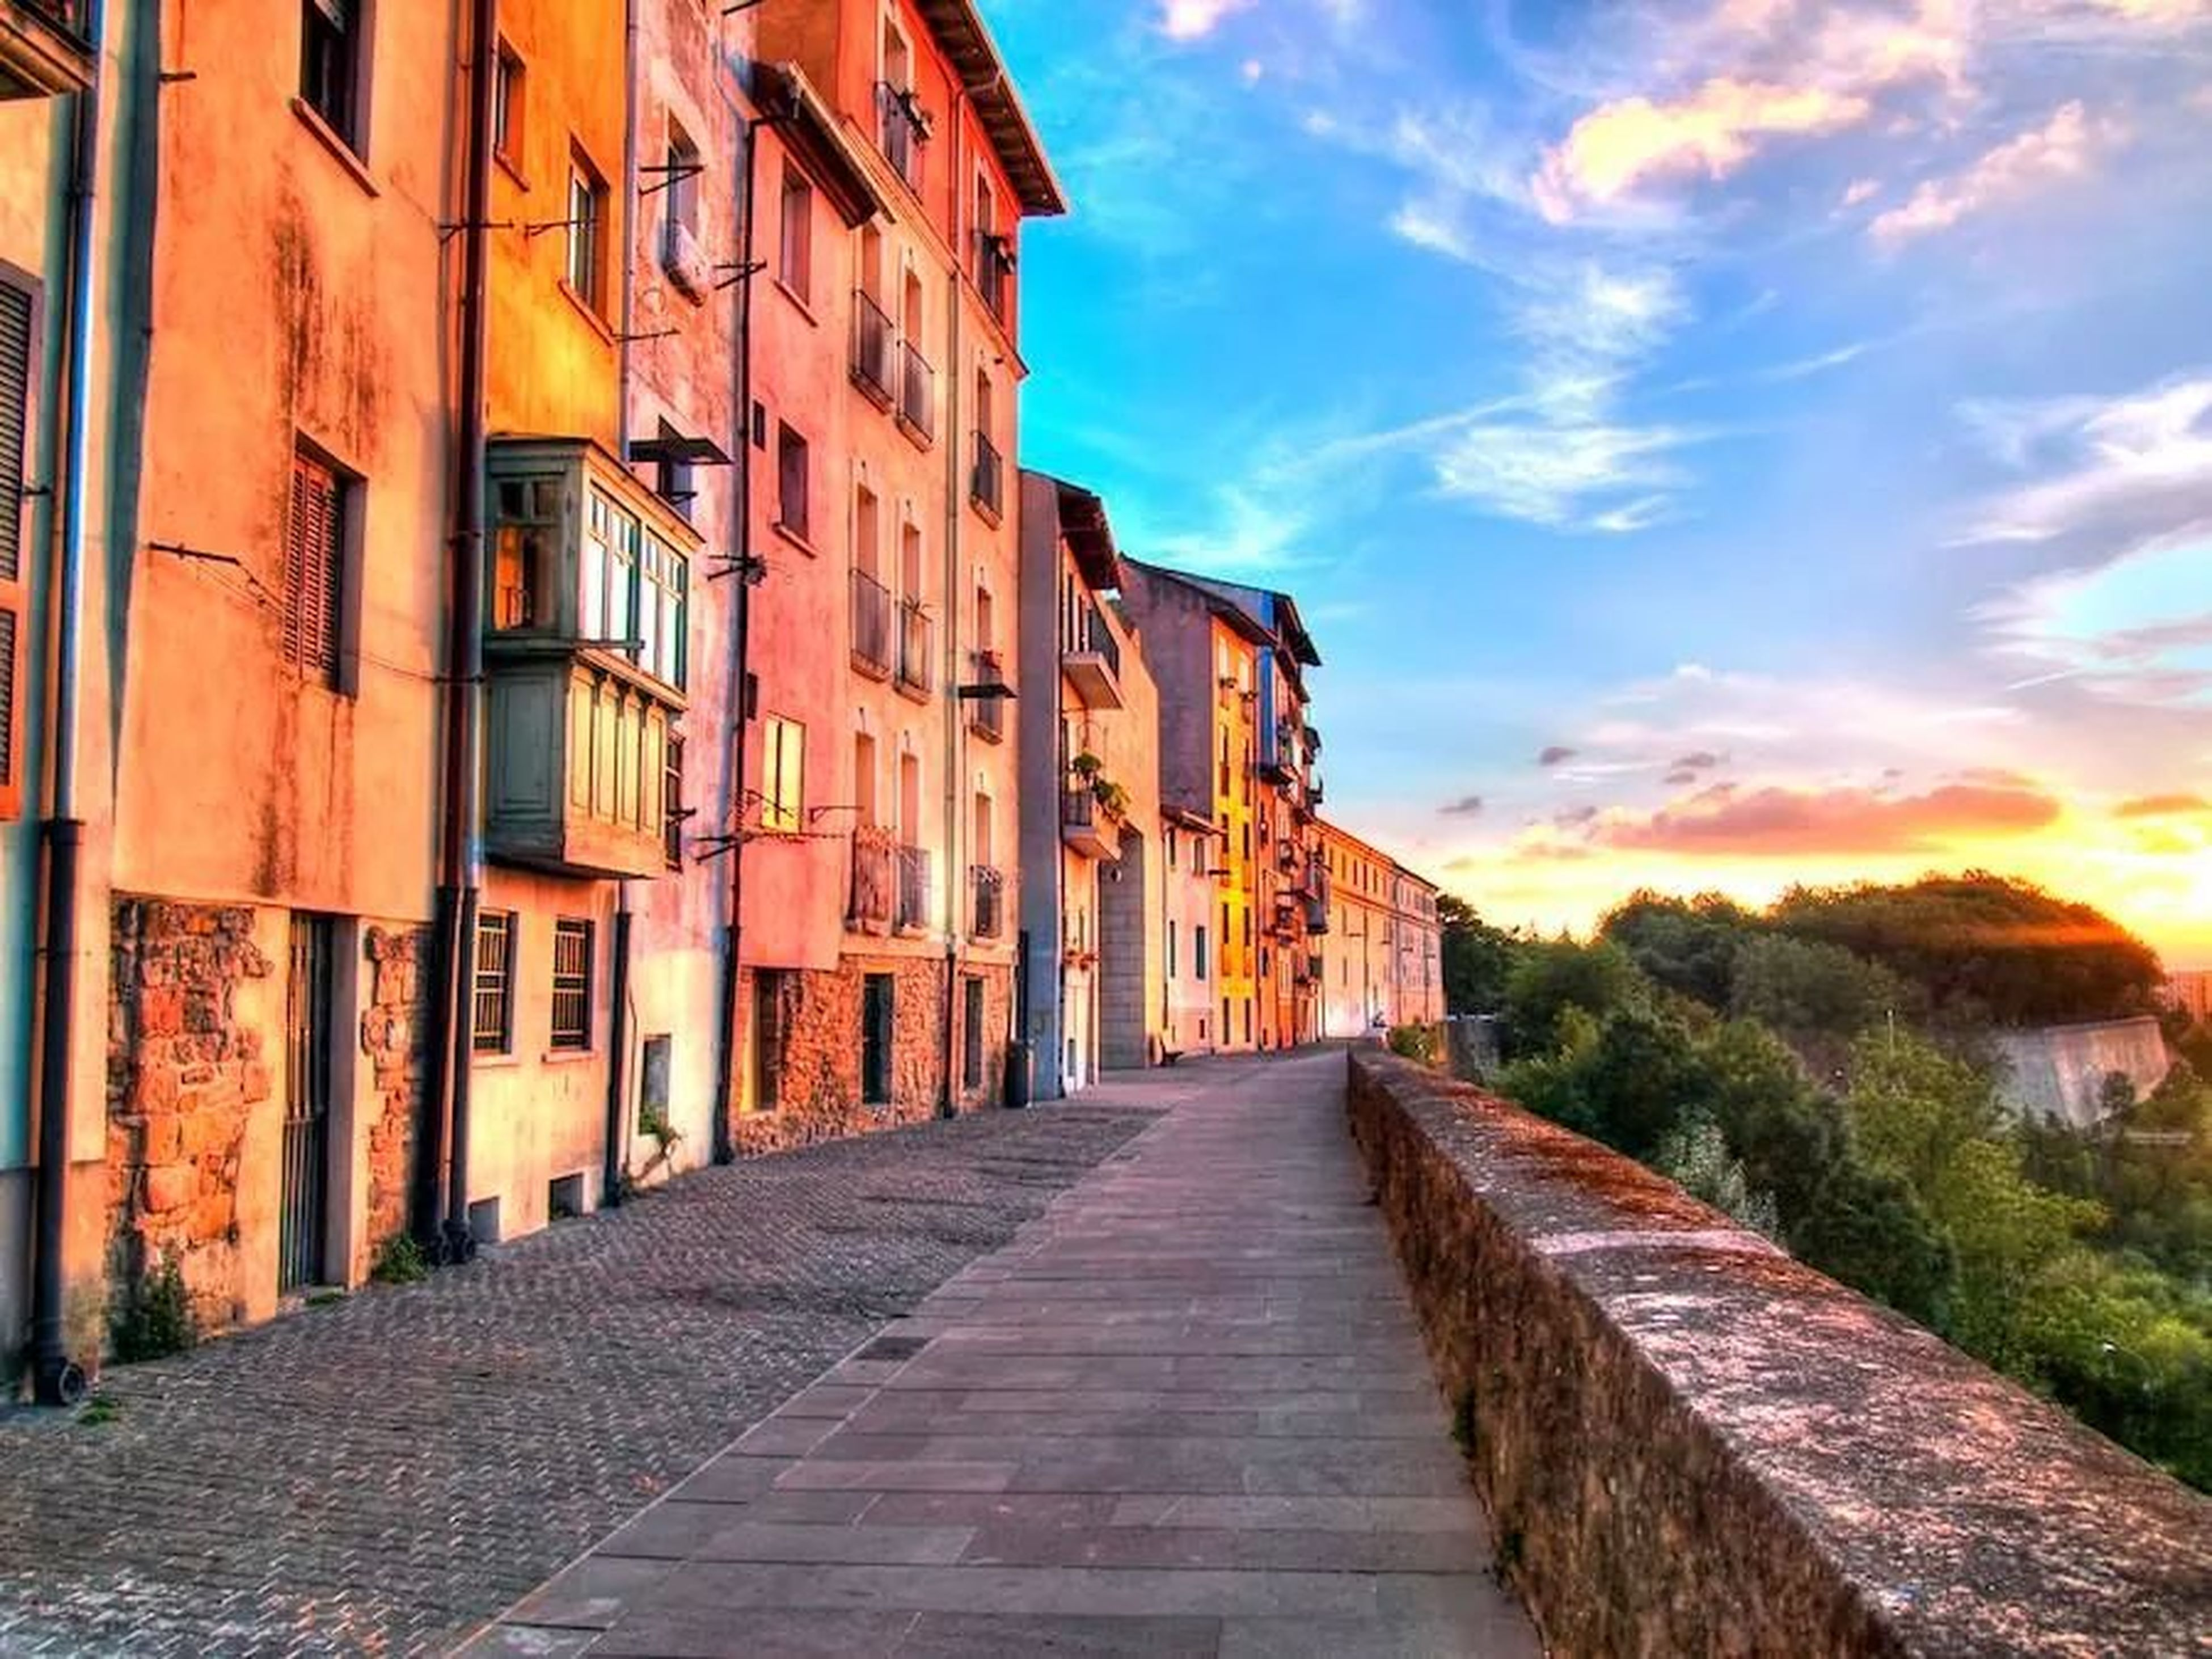 building exterior, architecture, built structure, the way forward, sky, residential structure, residential building, diminishing perspective, house, street, narrow, vanishing point, town, city, cobblestone, building, residential district, cloud - sky, alley, outdoors